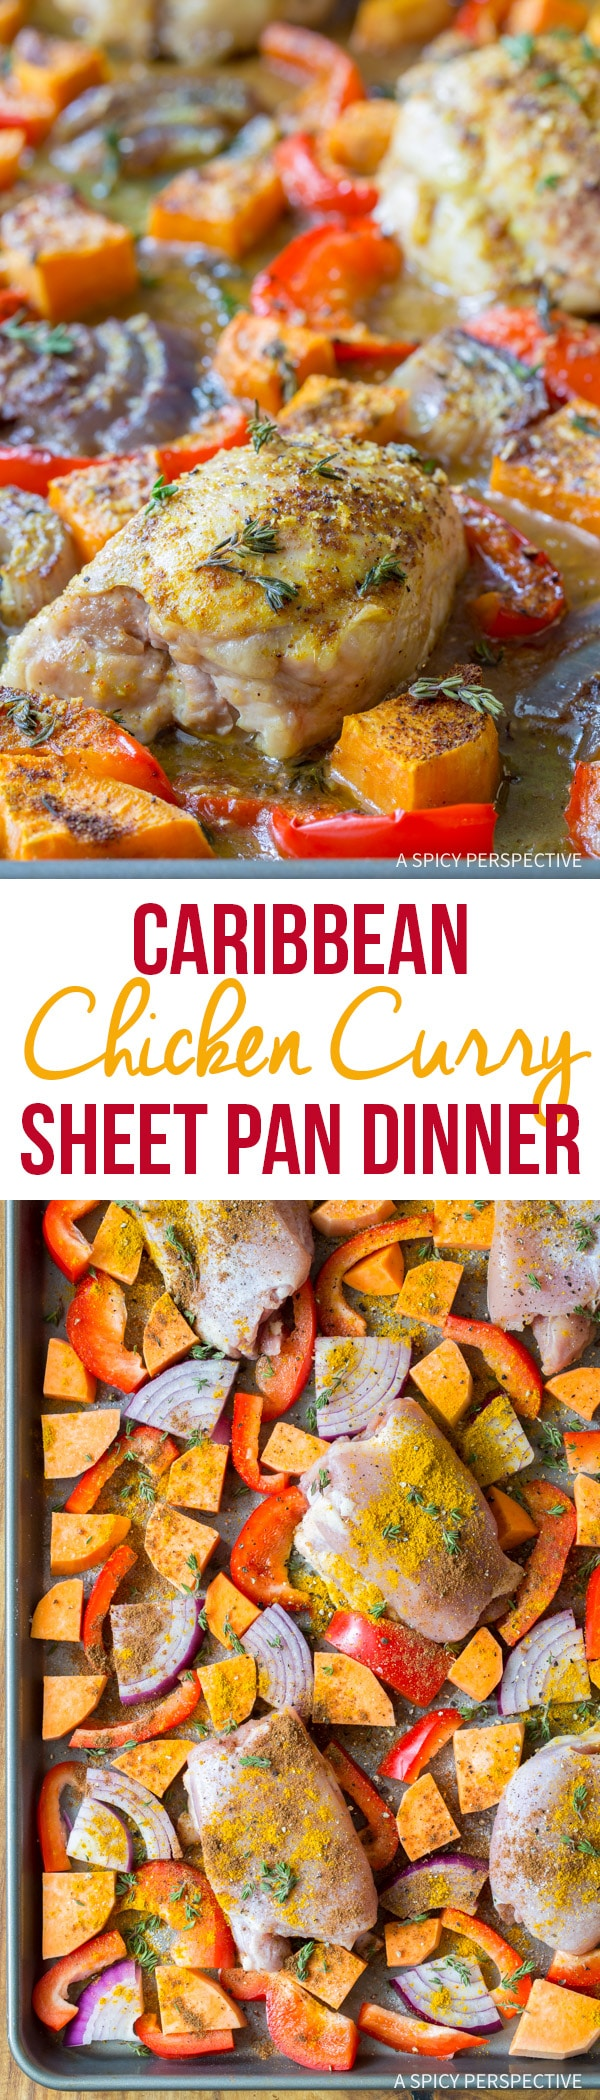 Easy Healthy Caribbean Chicken Curry Sheet Pan Dinner (Low Carb, Gluten Free, and Dairy Free!)